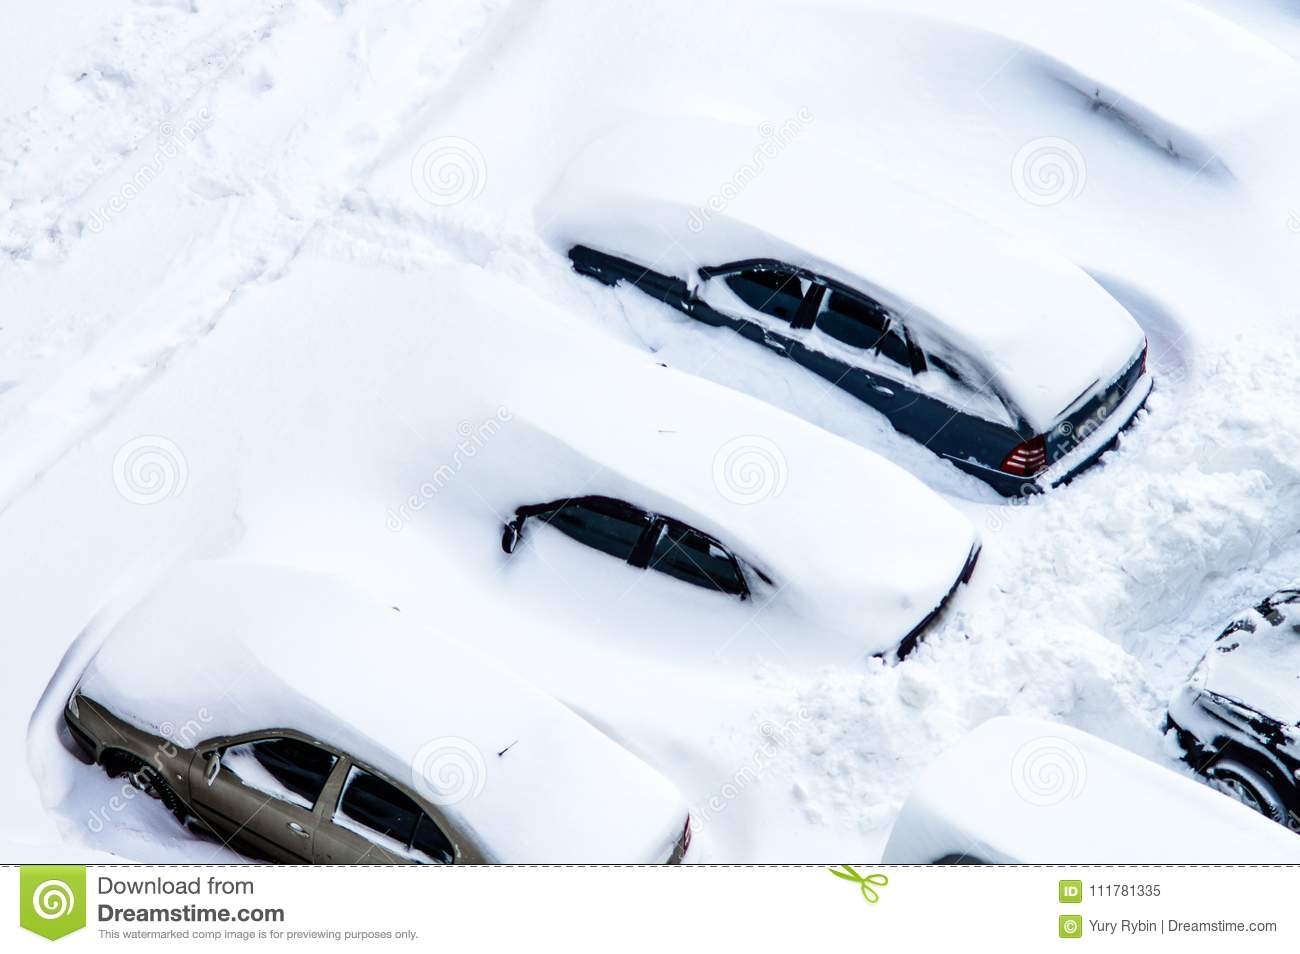 After a snowstorm, cars in the parking lot are covered with a th